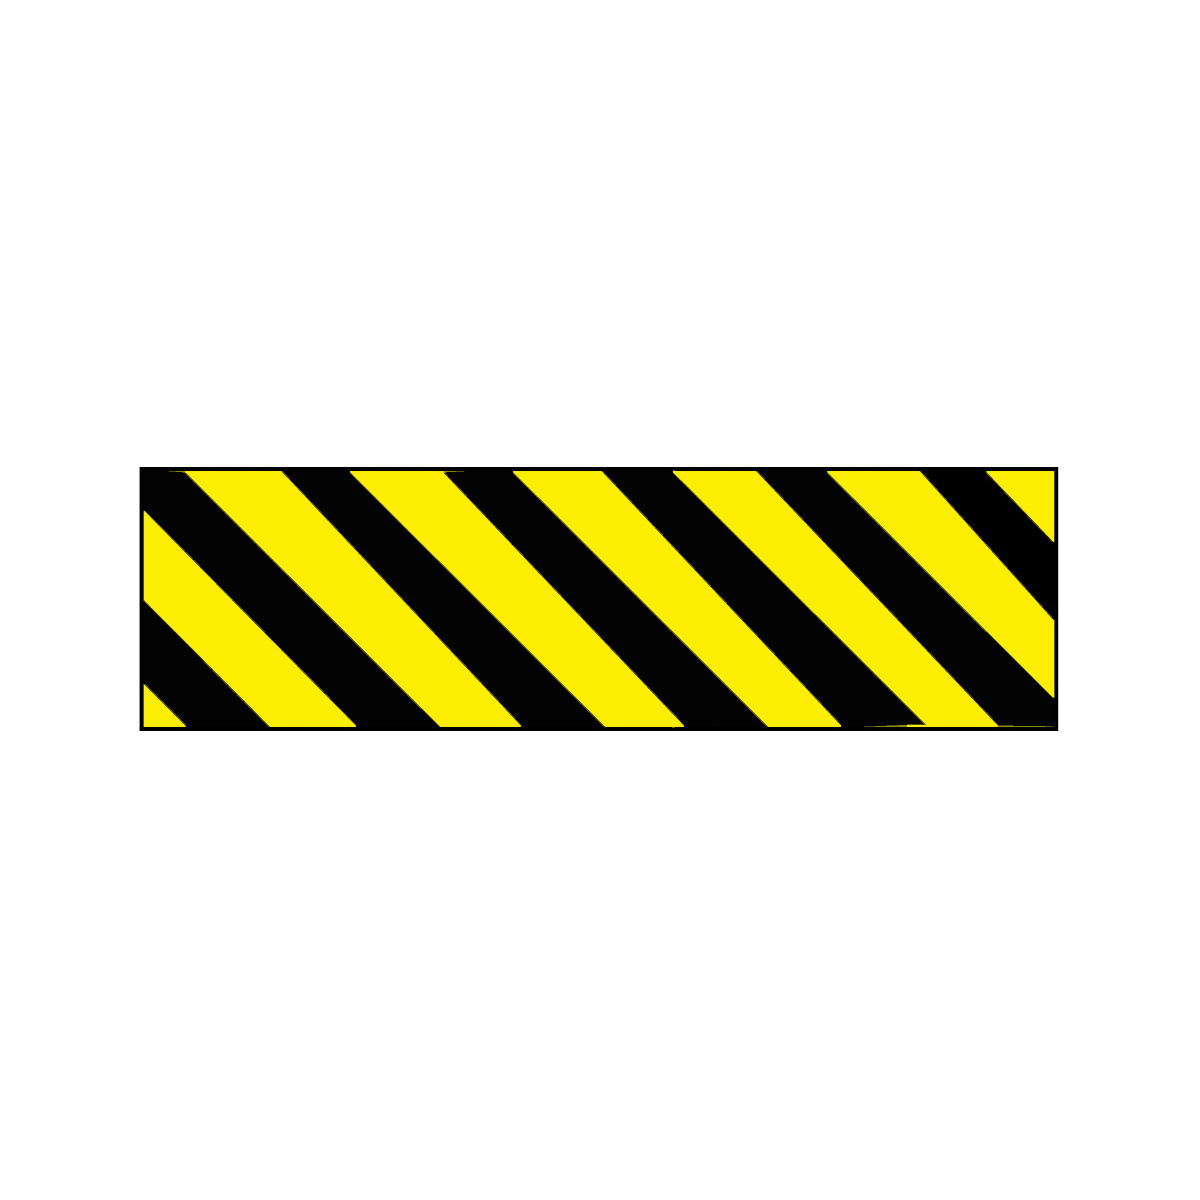 Hazard Warning Signs - ClipArt Best